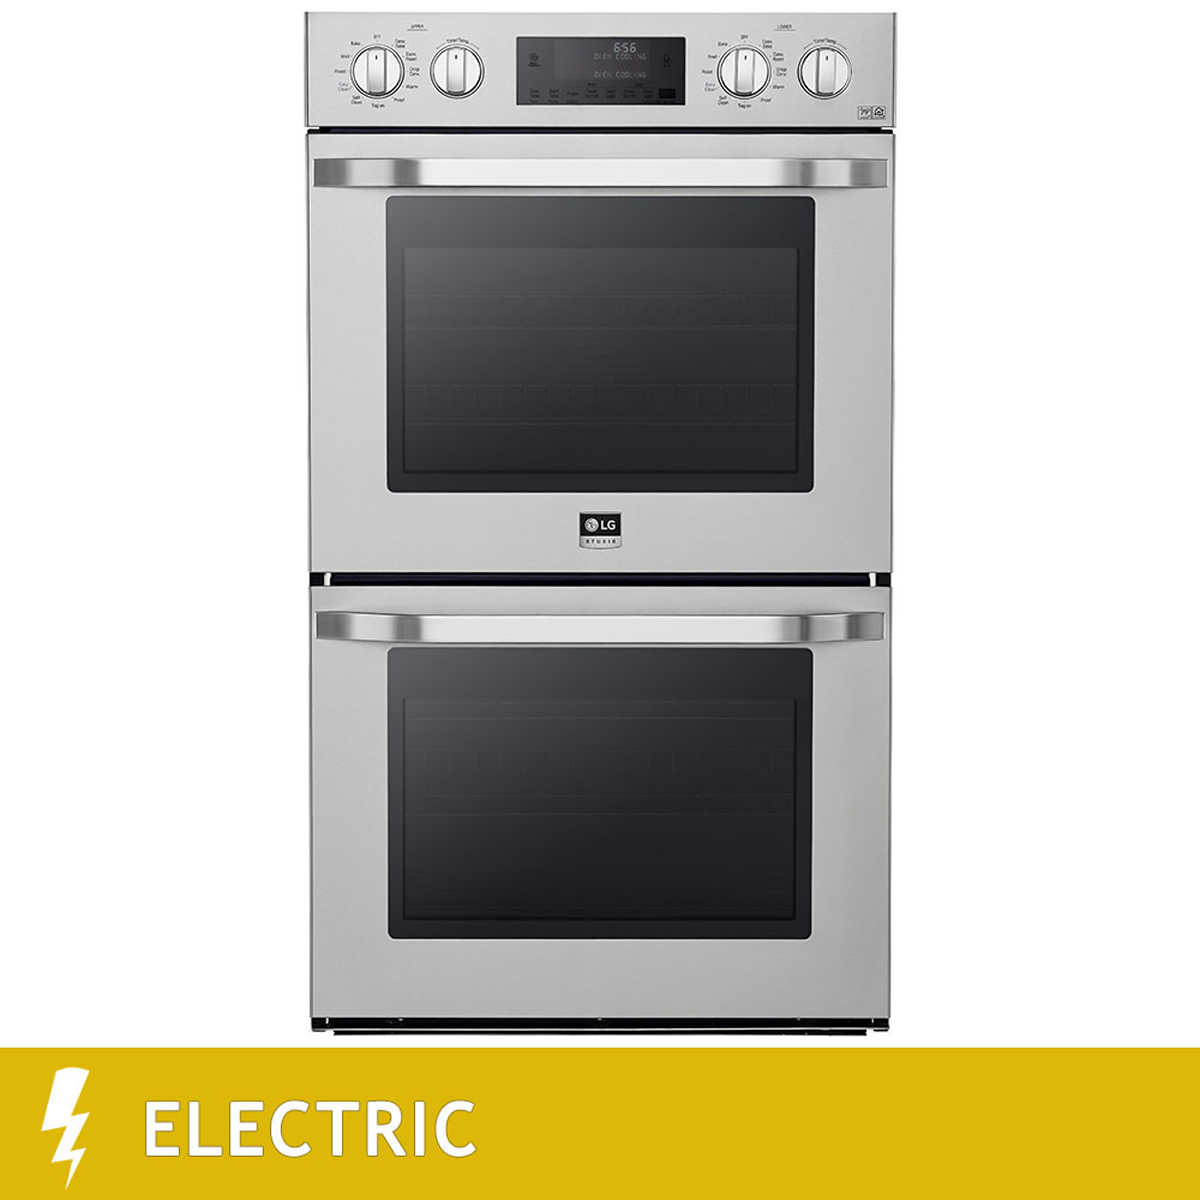 Uncategorized Kitchen Appliances 123 cooking appliances costco lg studio 30 9 4cuft total capacity double wall oven in stainless steel